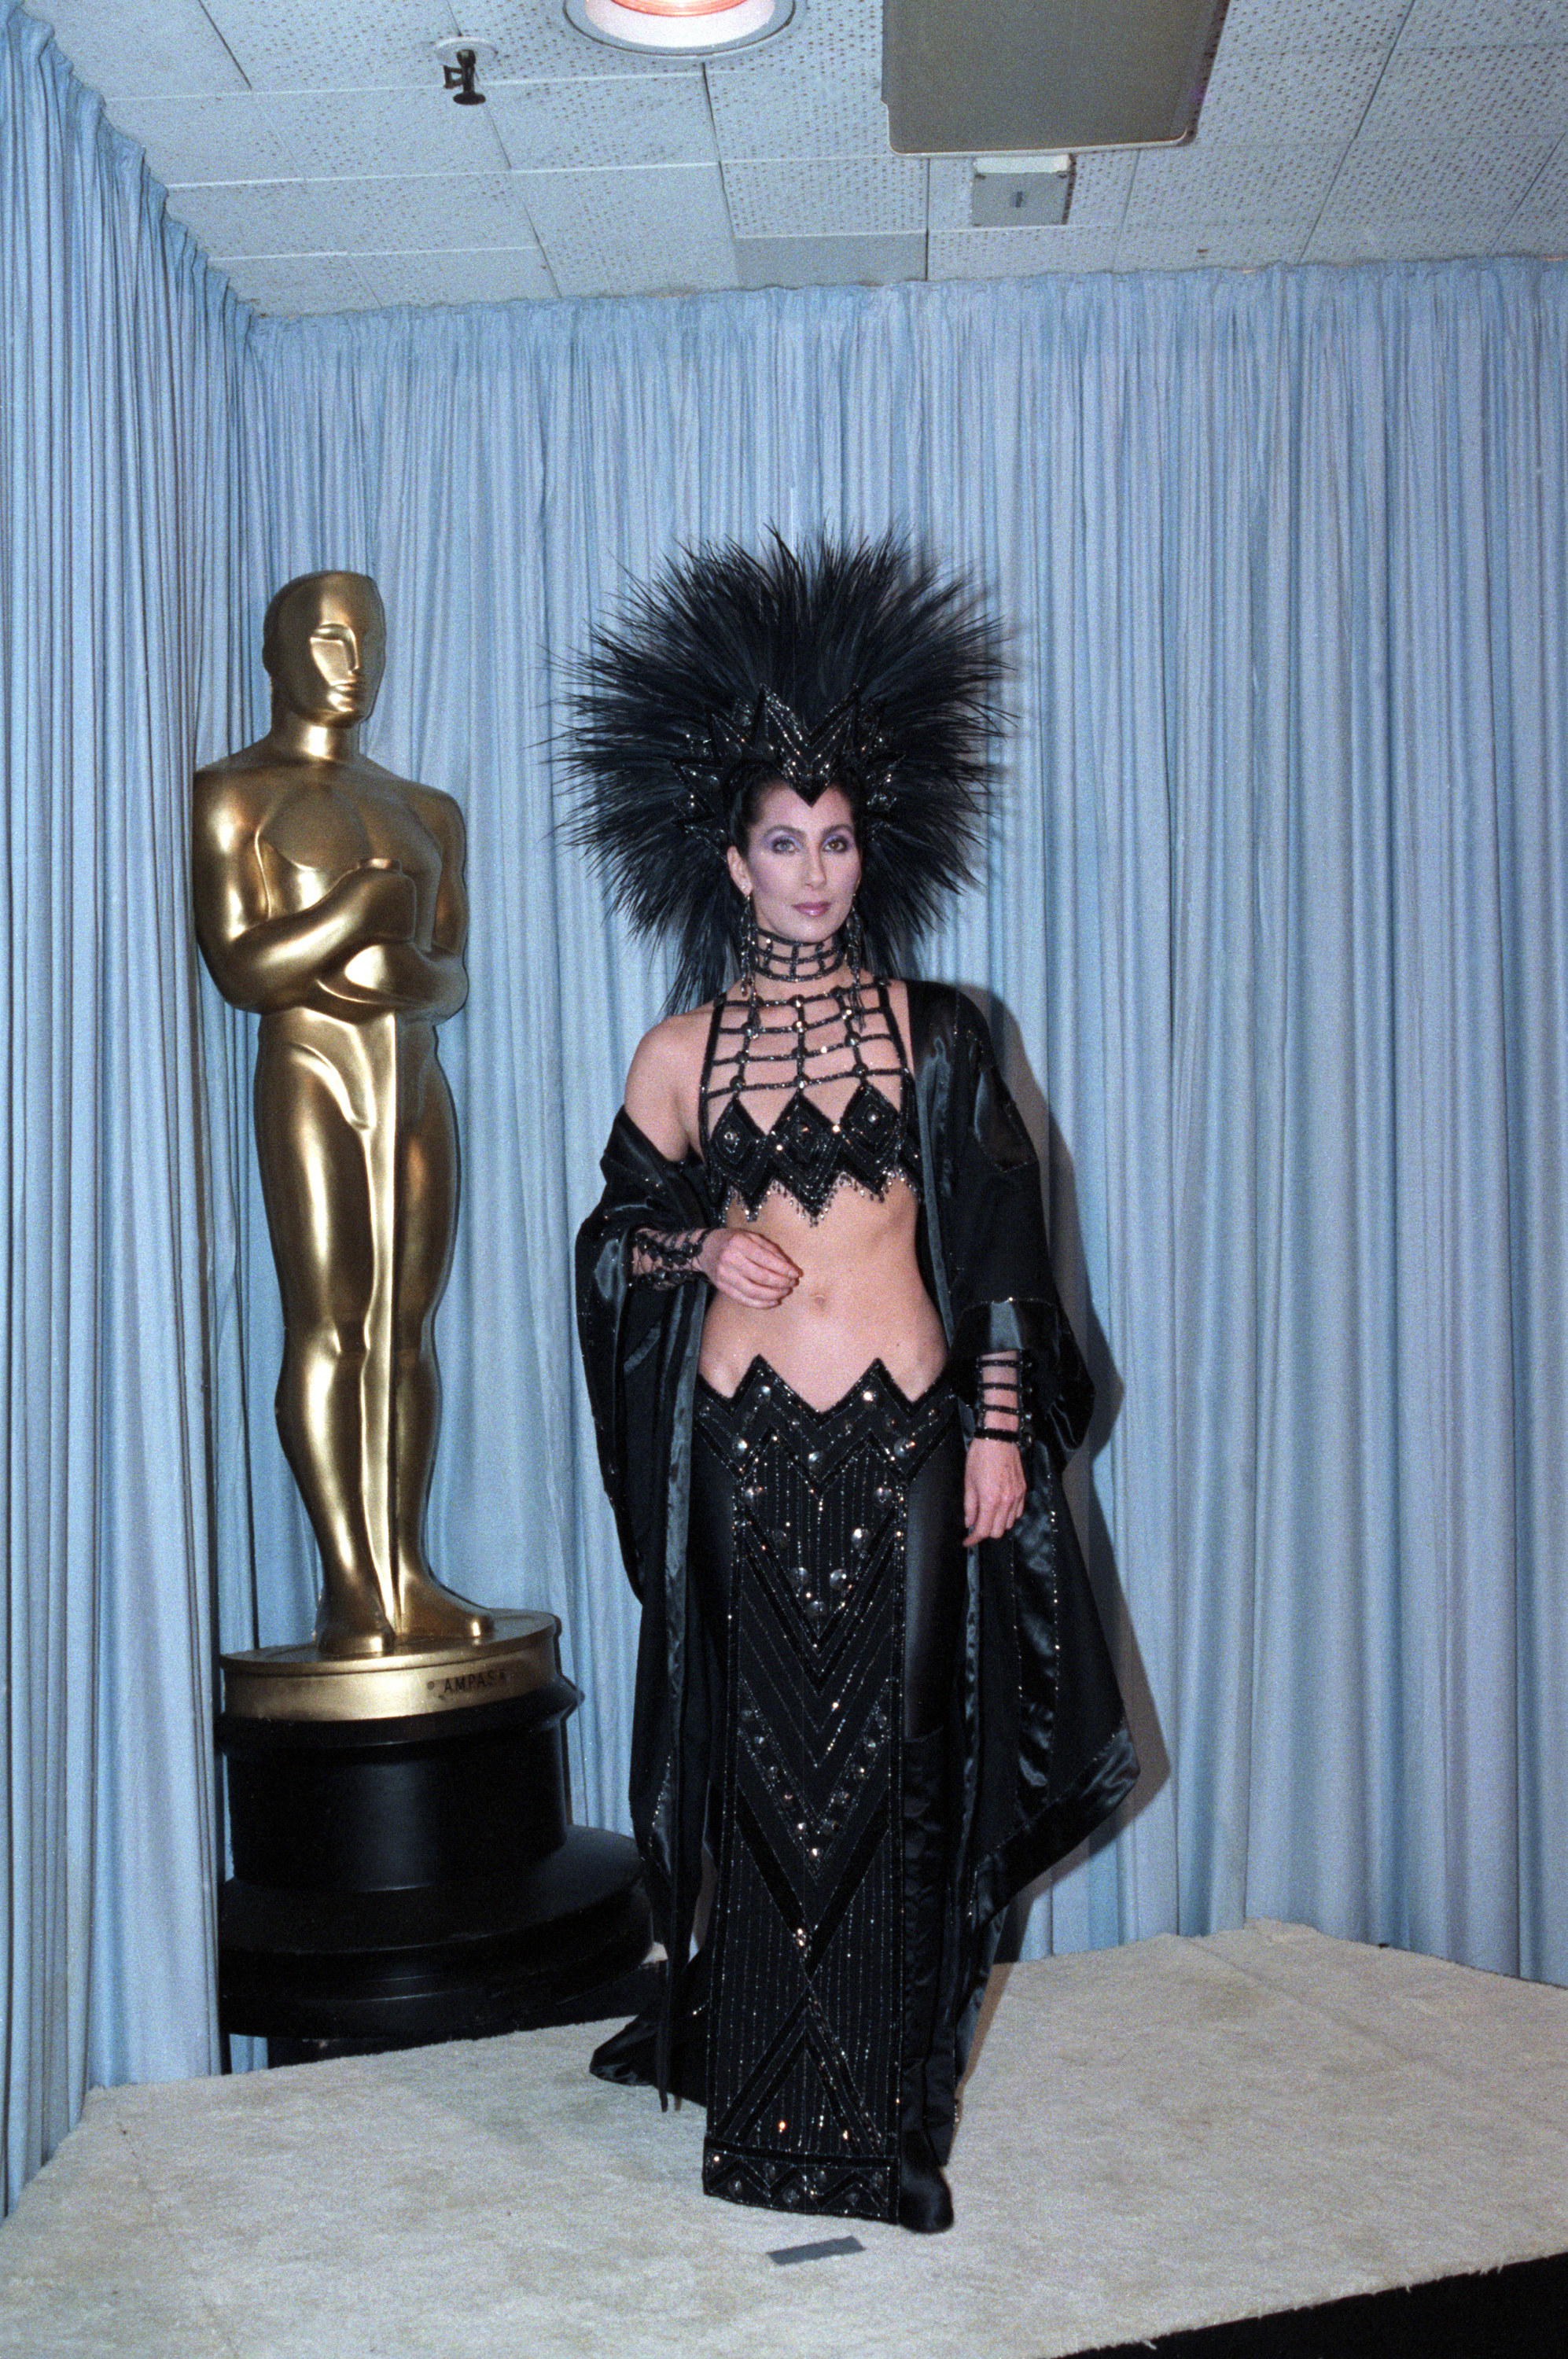 Cher dressed in a midriff-baring long black gown with a plumed headpiece